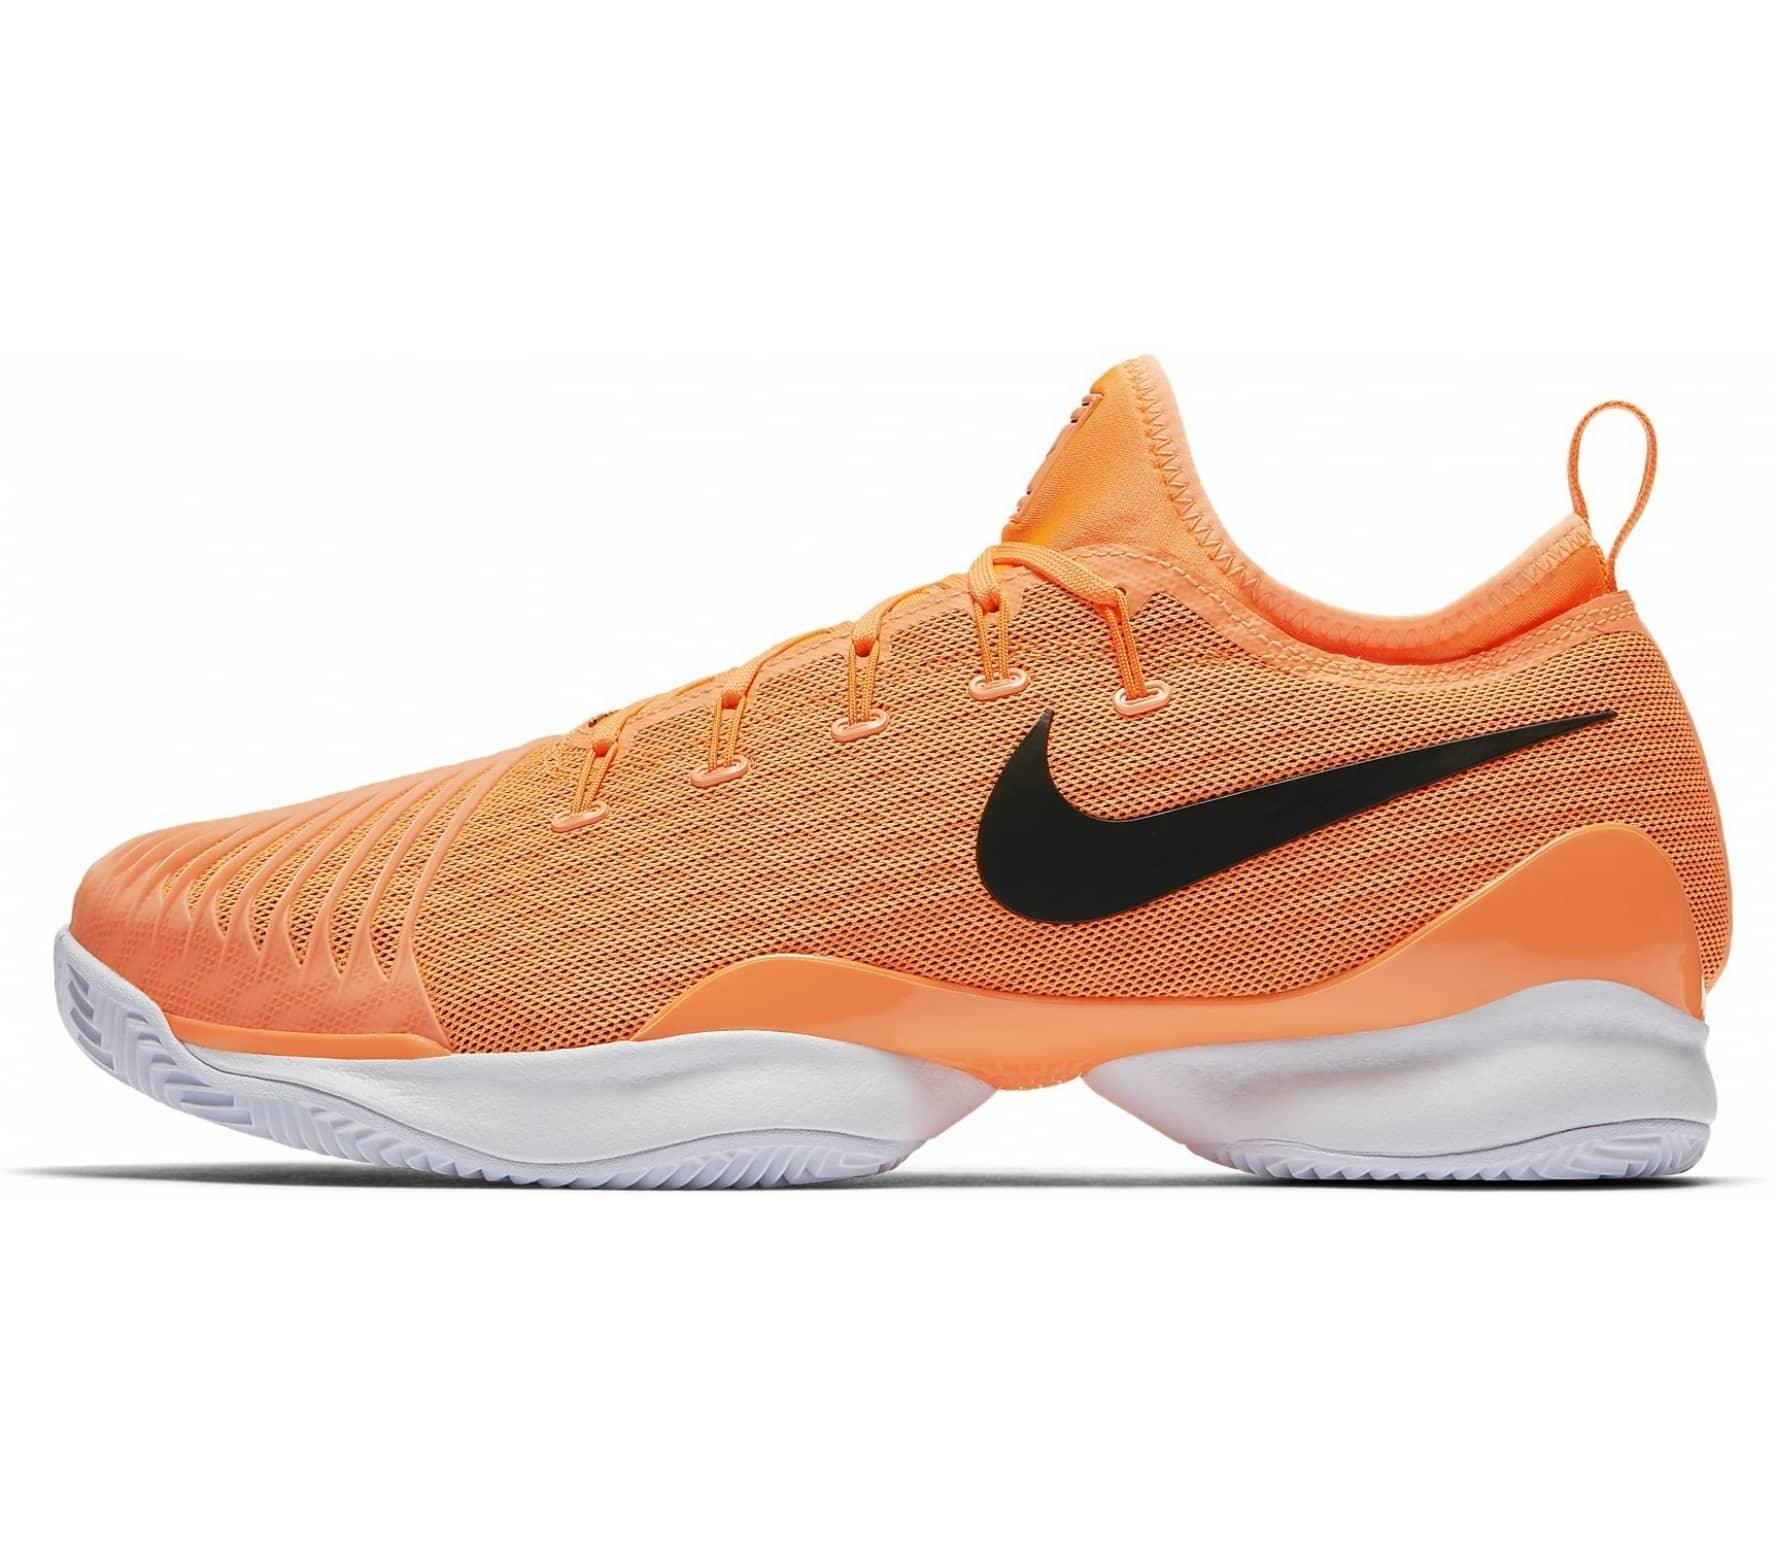 c8caf5ff0e75 Nike - Air Zoom Ultrafly Low Clay men s tennis shoes (orange) - buy ...